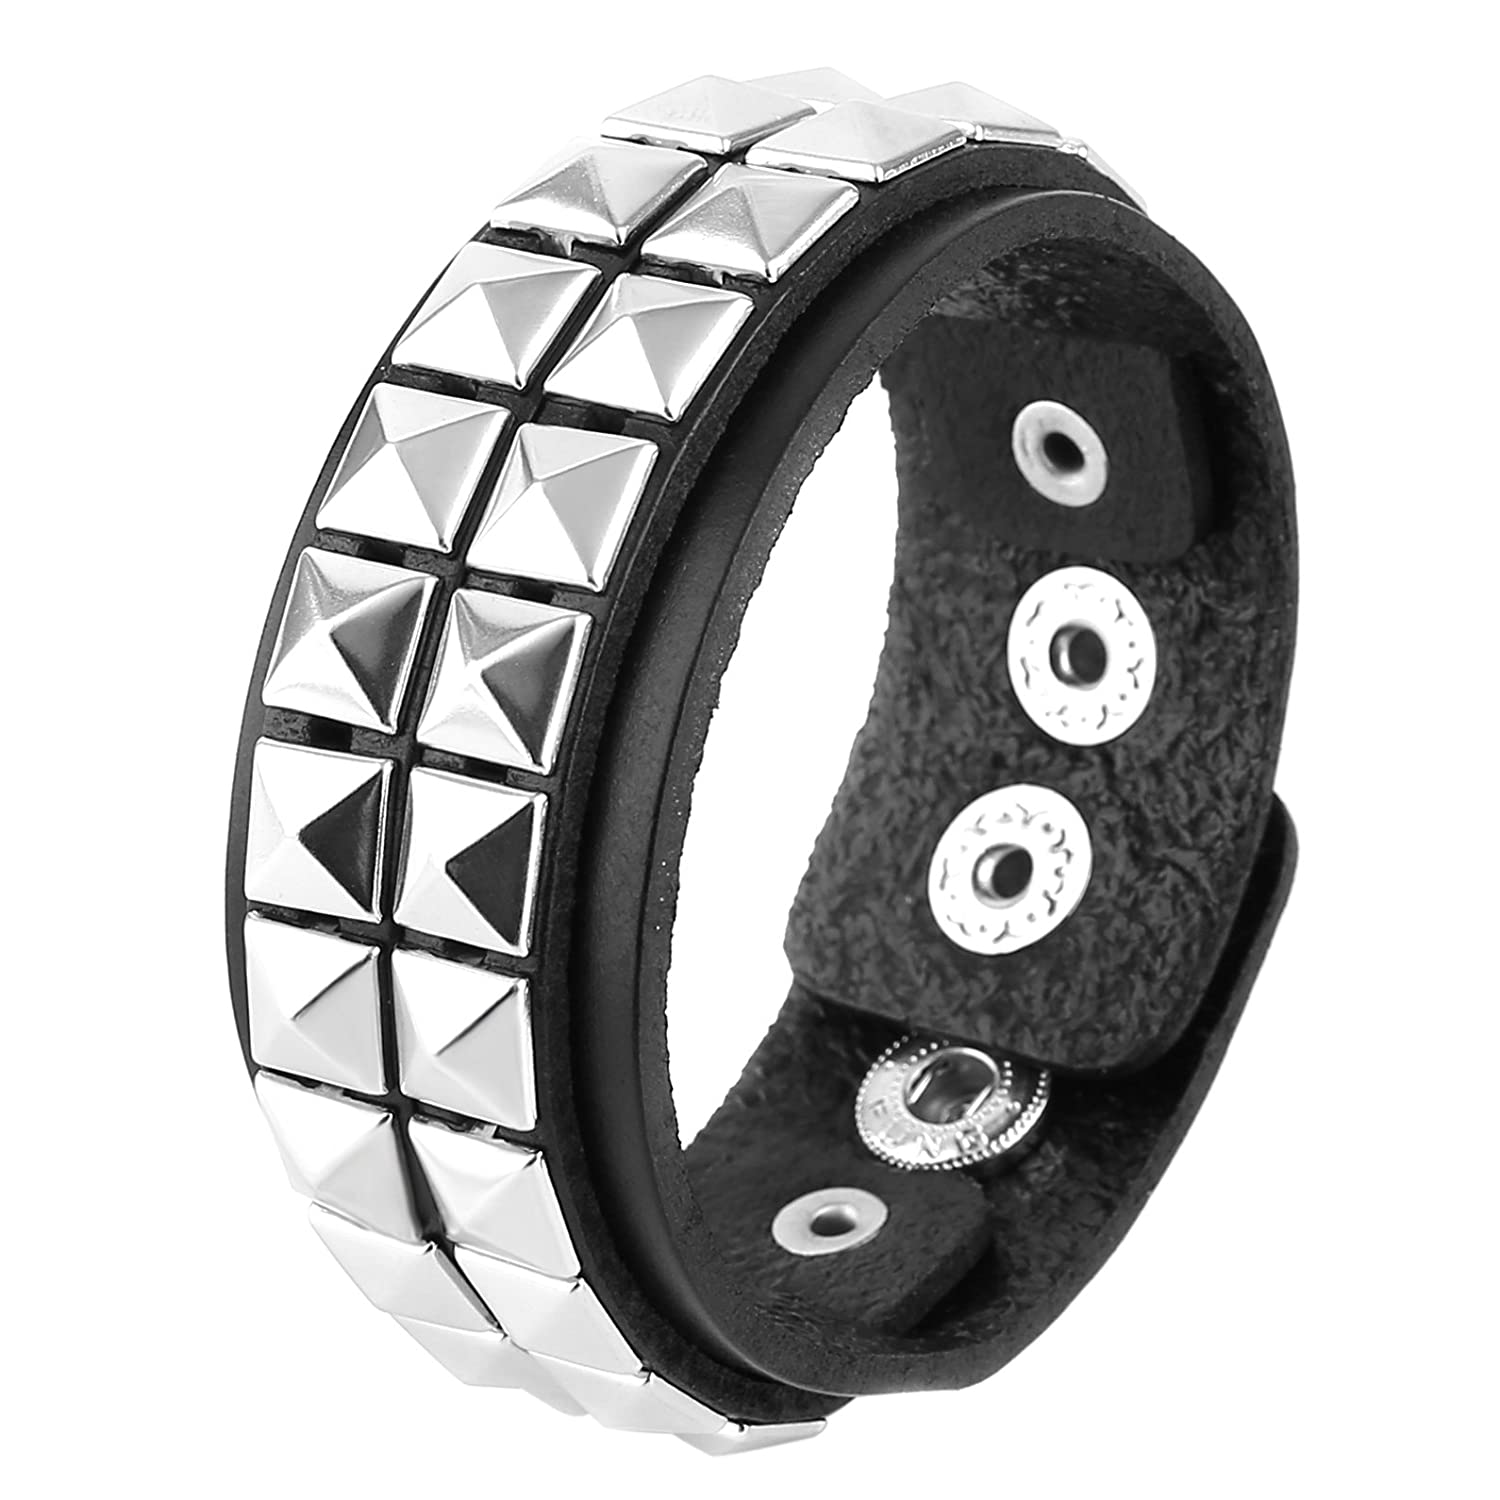 HZMAN Unisex Black Genuine Leather Silver Pyramid Studs Wristband 80s Gothic Punk Glam Emo PSZ71206